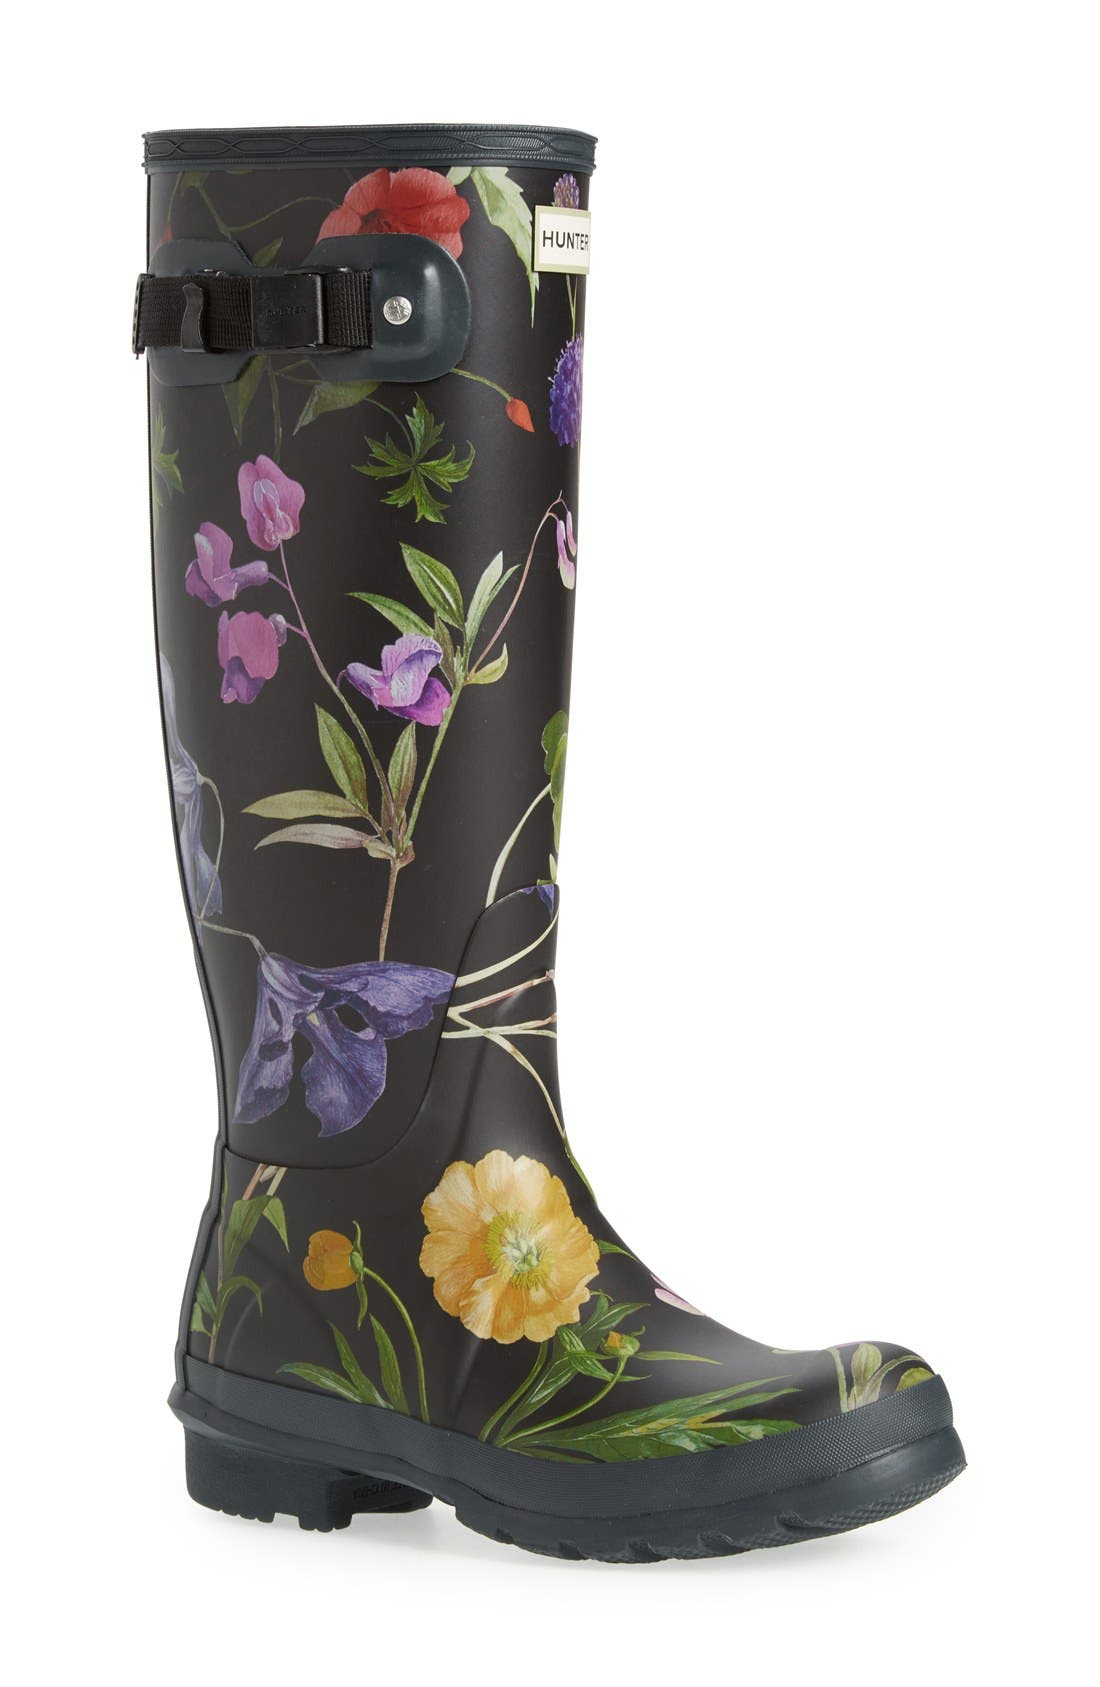 Buy Hunter Women's Original Short Rain Boot and other Mid-Calf at membhobbdownload-zy.ga Our wide selection is eligible for free shipping and free returns.